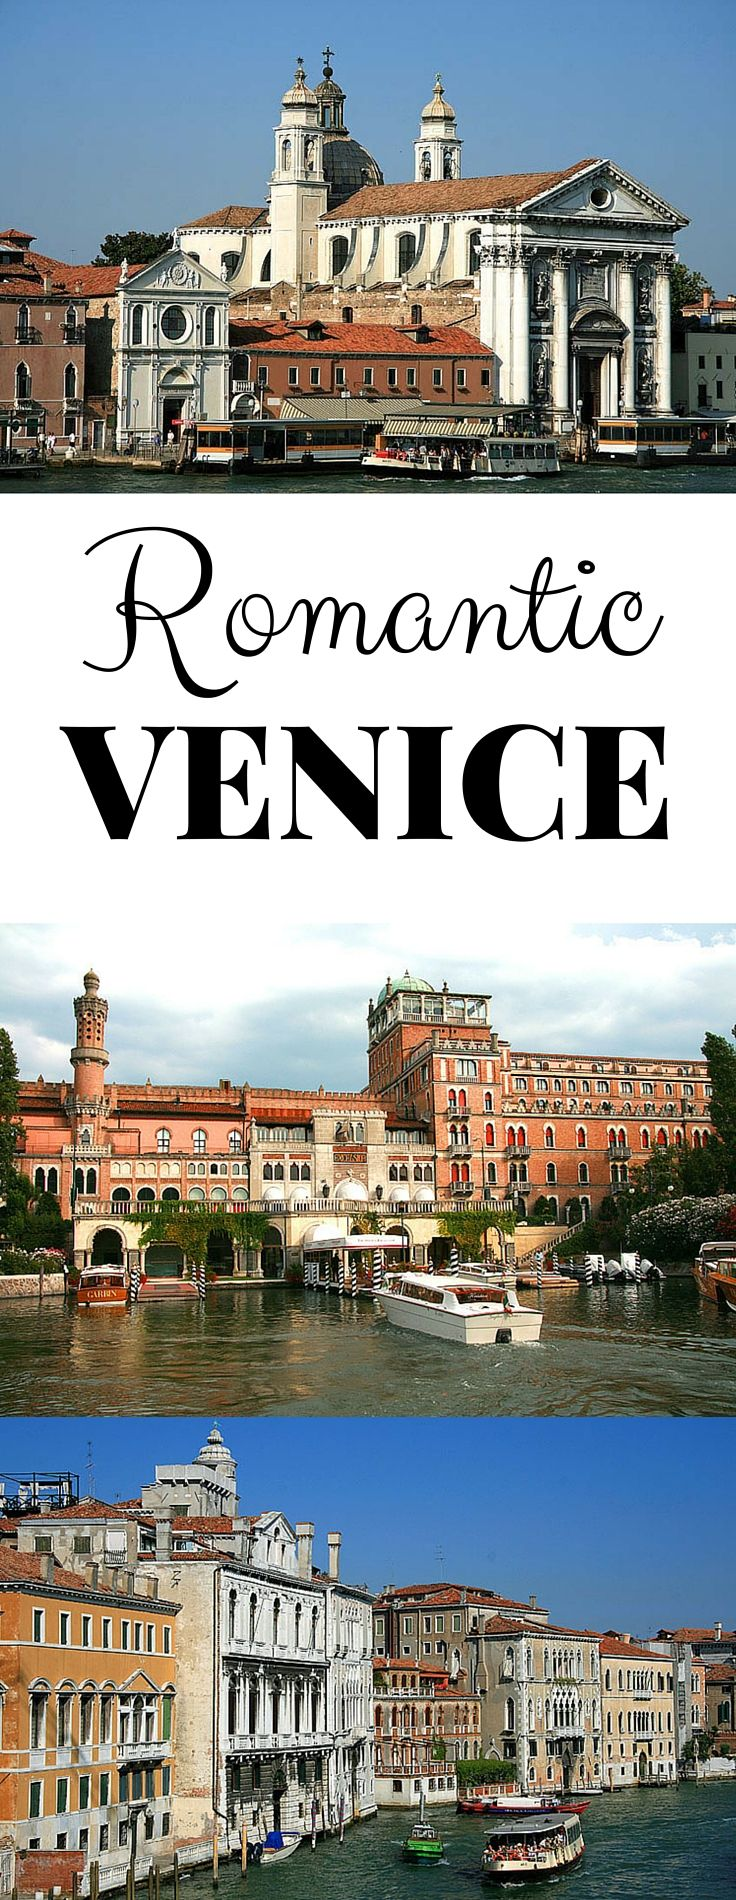 Can you ever get enough of Venice? Birthplace of Casanova, the city is nicknamed La Serenissima (the most serene). Here's our ode to romantic Venice...